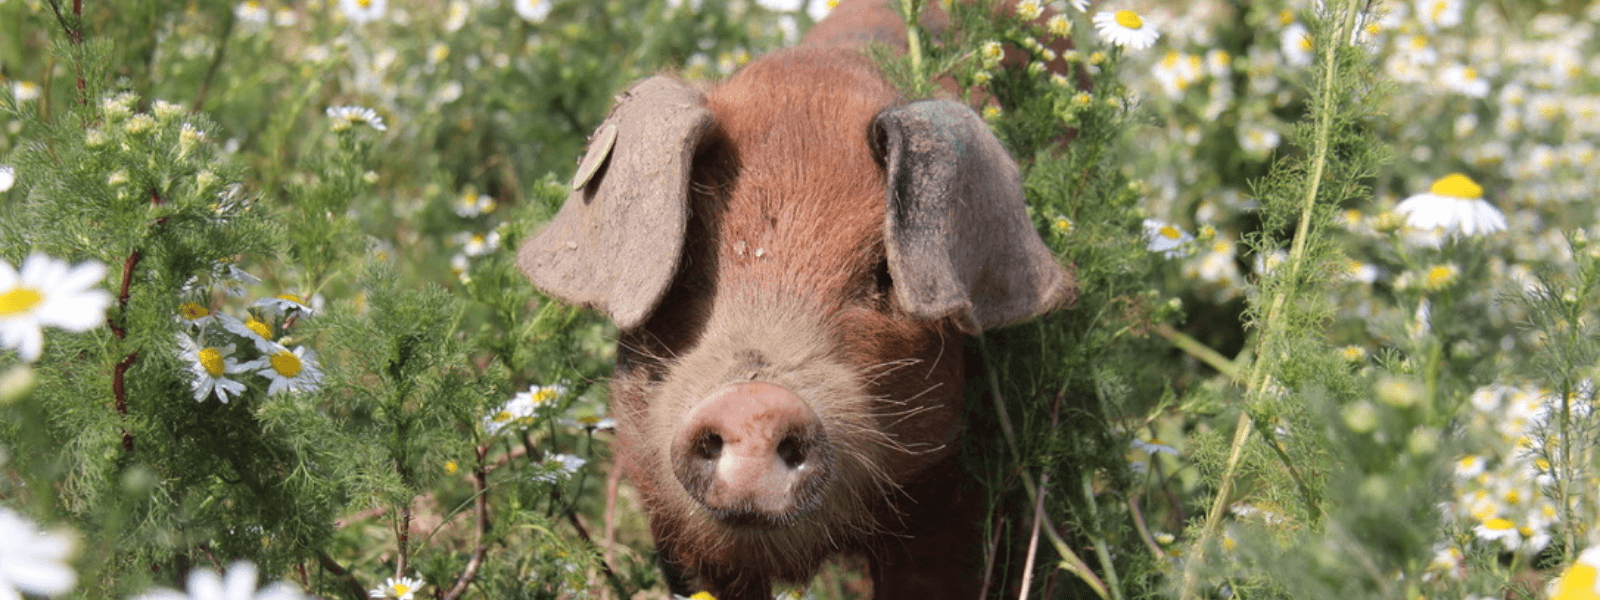 https://www.airfield.ie/wp-content/uploads/2020/11/Sandy-Black-Pigs-in-Airfield-Farm-1.png